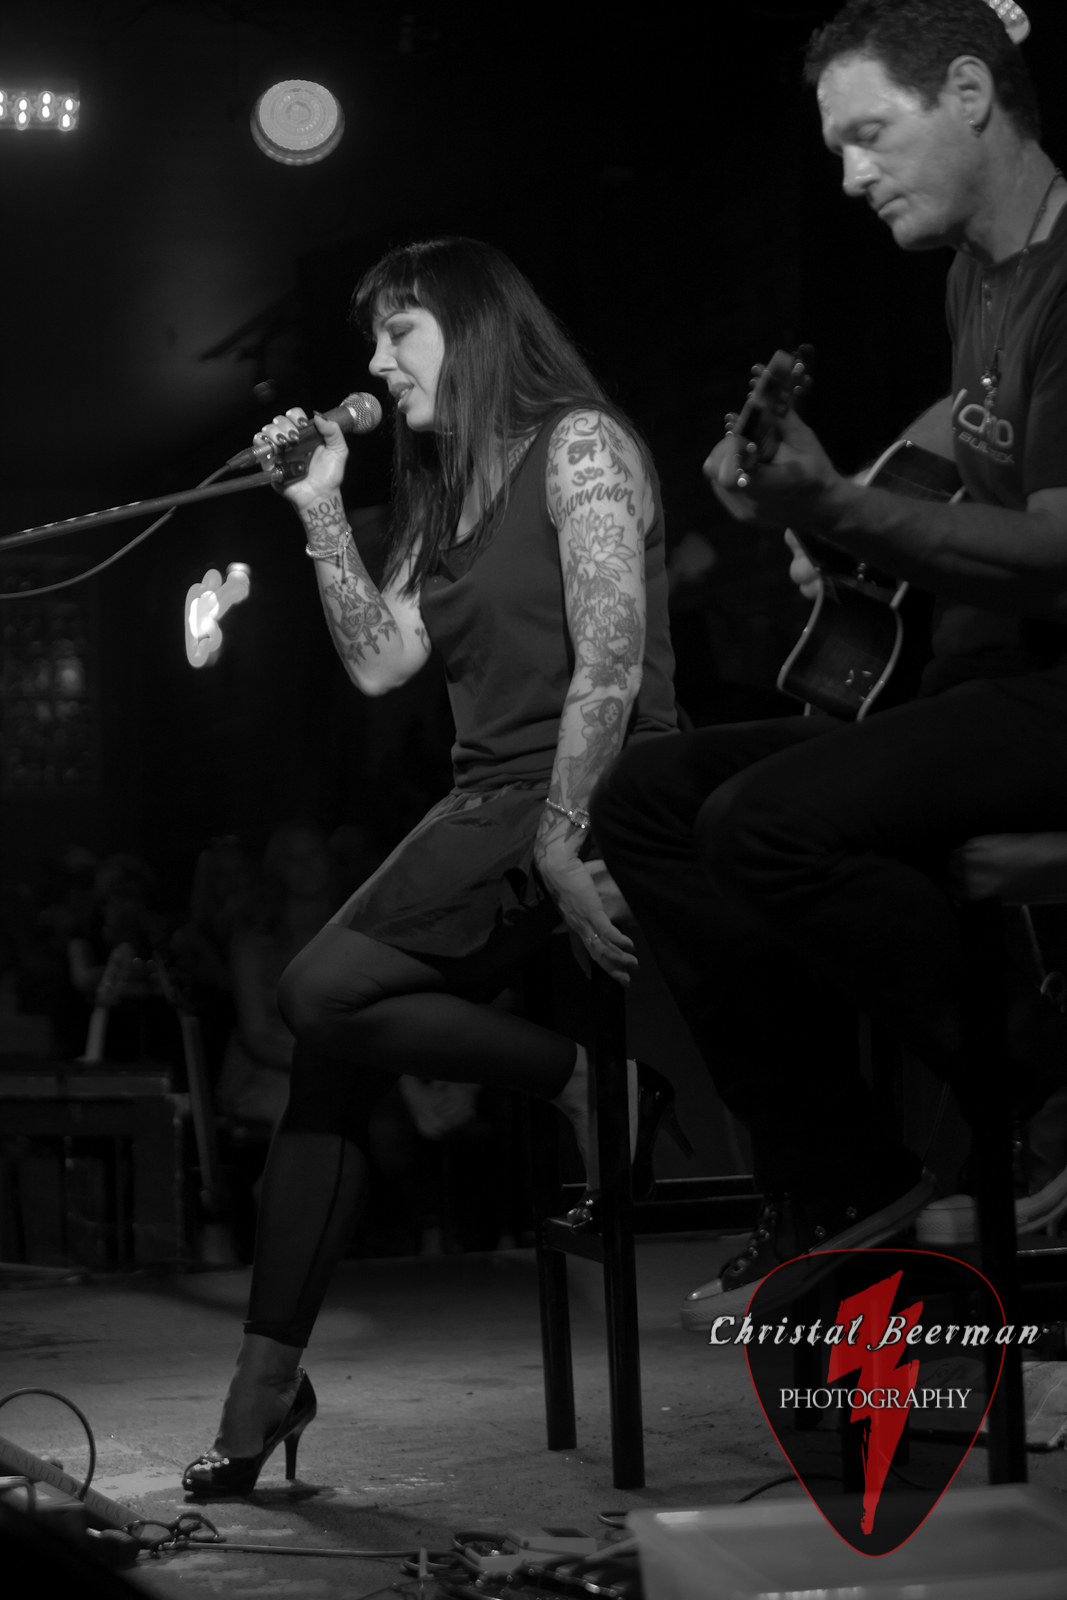 Bif Naked @ The Queens Nanaimo. May 10, 2016